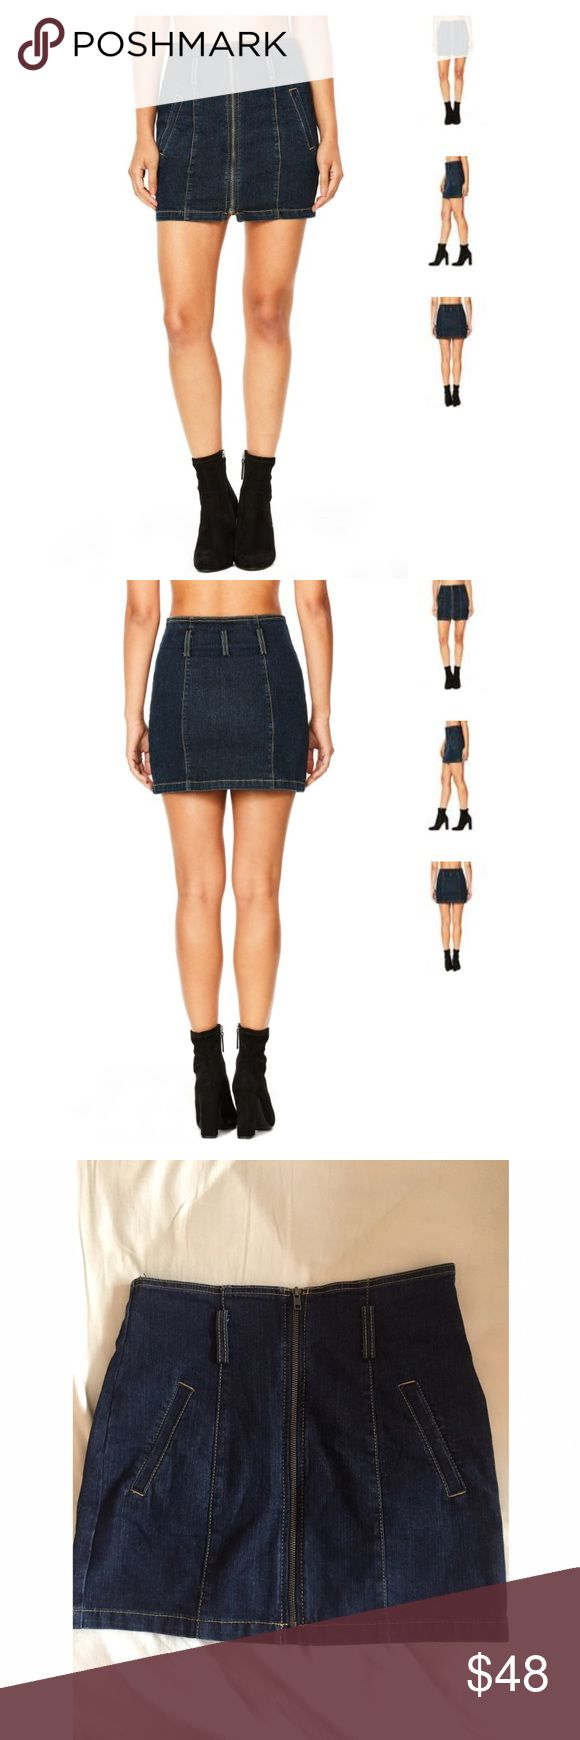 CARMAR Denim Zip Up Theone Mini Skirt 27 $168 Never worn, new with tags denim skirt! The material is so comfortable it fits a 27 true to size and could probably stretch to a 28. LF Skirts Mini